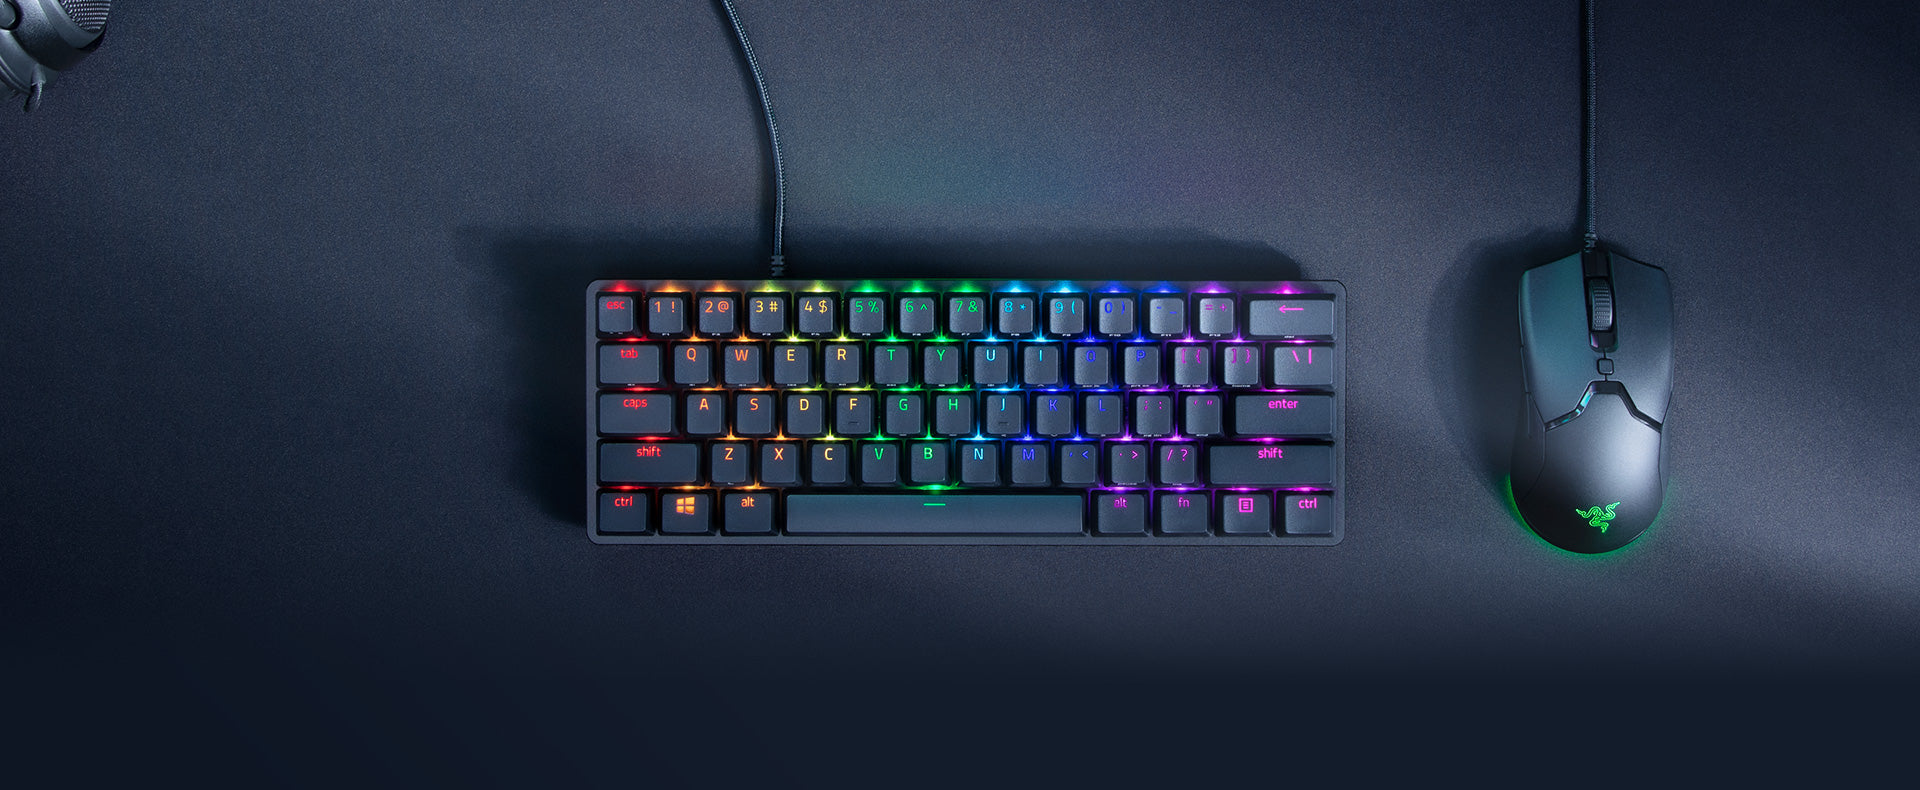 DOMINATE ON A DIFFERENT SCALE - Enter a new dimension of deadly with the Razer Huntsman Mini—a 60% gaming keyboard with cutting-edge Razer Optical Switches. Highly portable and ideal for streamlined setups, it's time to experience lightning-fast actuation in our most compact form factor yet.